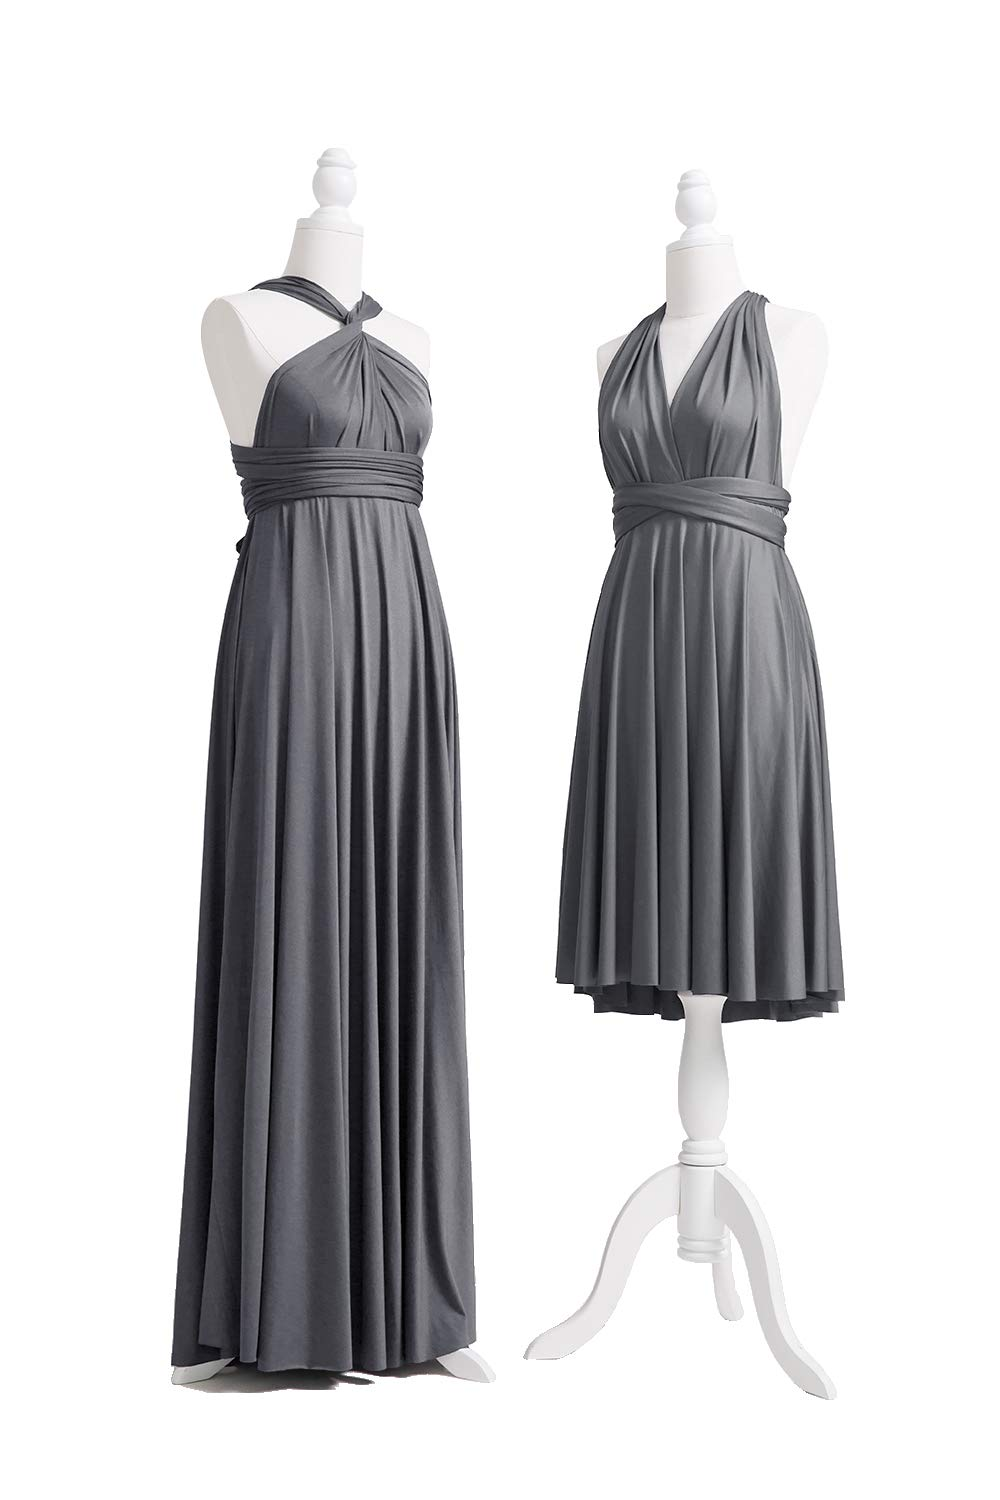 72STYLES Charcoal Grey Infinity Dress with Bandeau, Convertible Dress,  Bridesmaid Dress, Long,Short, Plus Size, Multi-Way Dress, Twist Wrap Dress